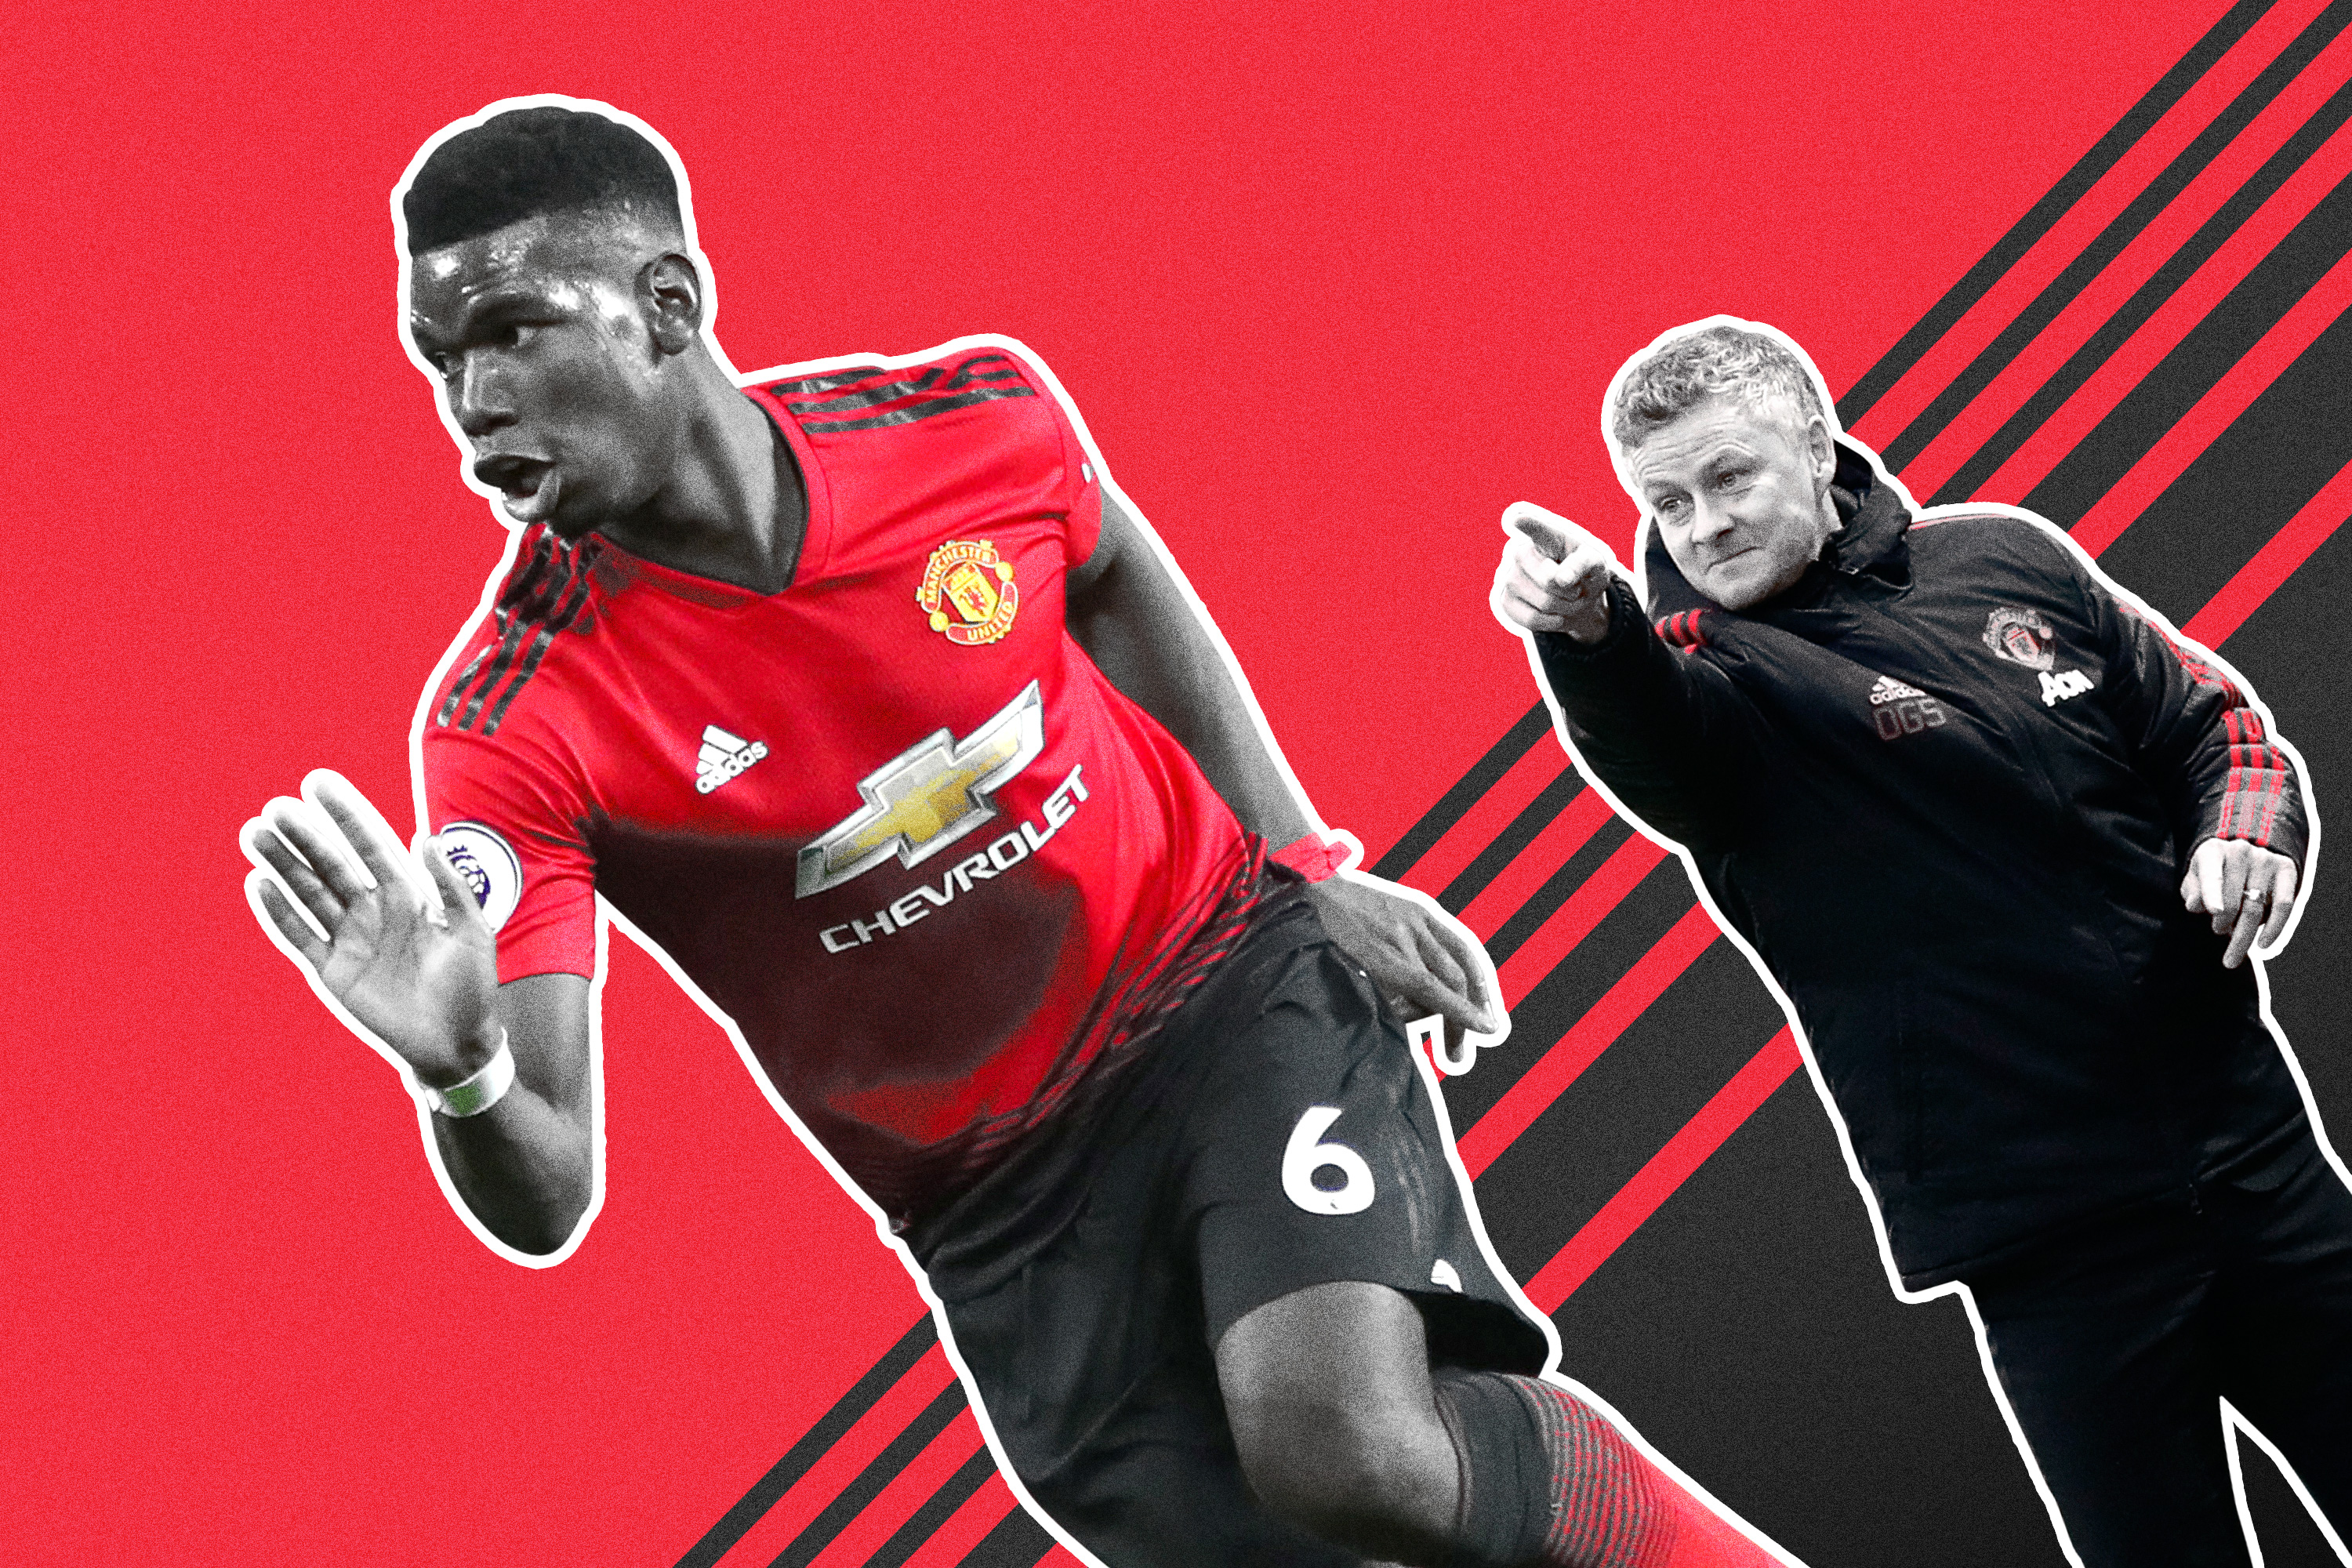 a4db10d9cac Welcome to the Pogbaissance  Paul Pogba and Manchester United Are Having  Fun Again